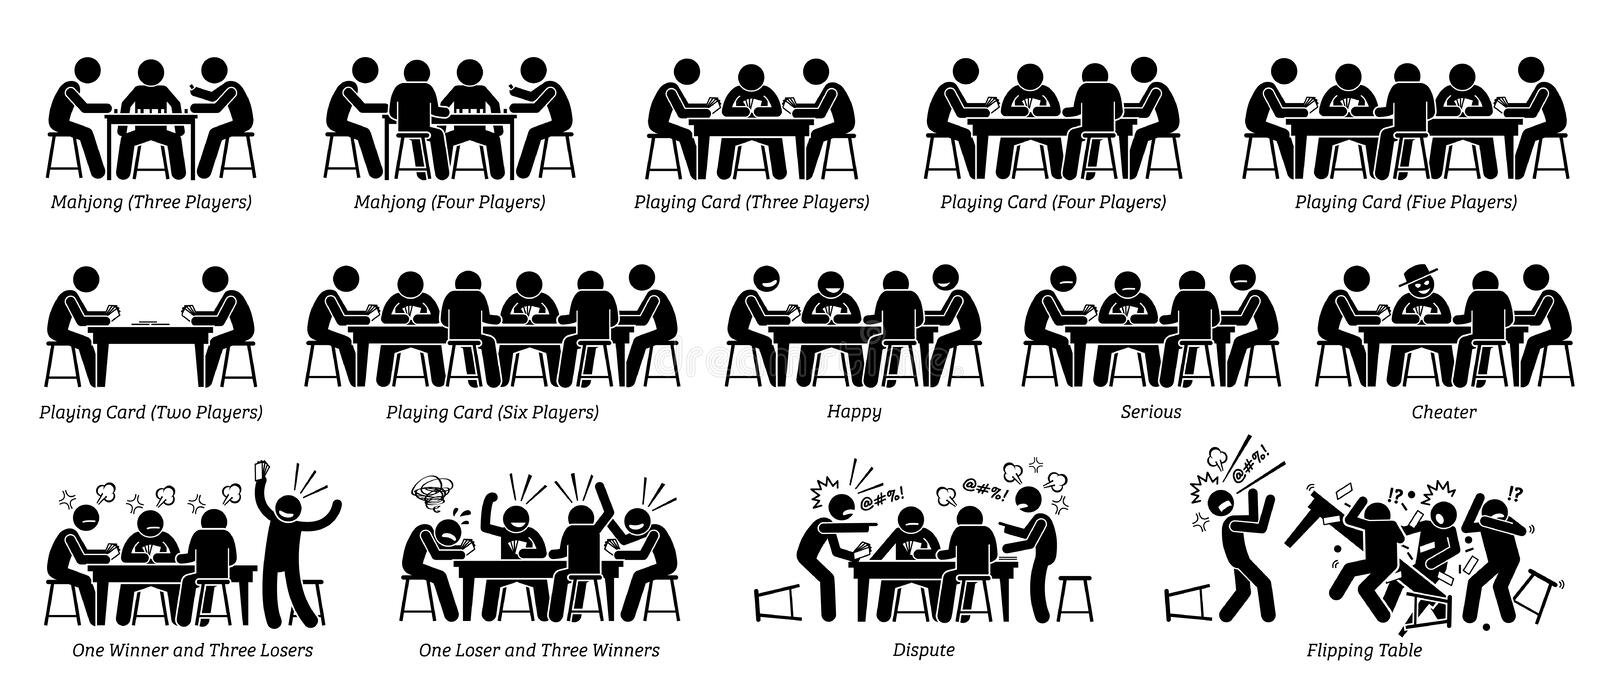 People playing game card, poker card, and mahjong on the table. vector illustration